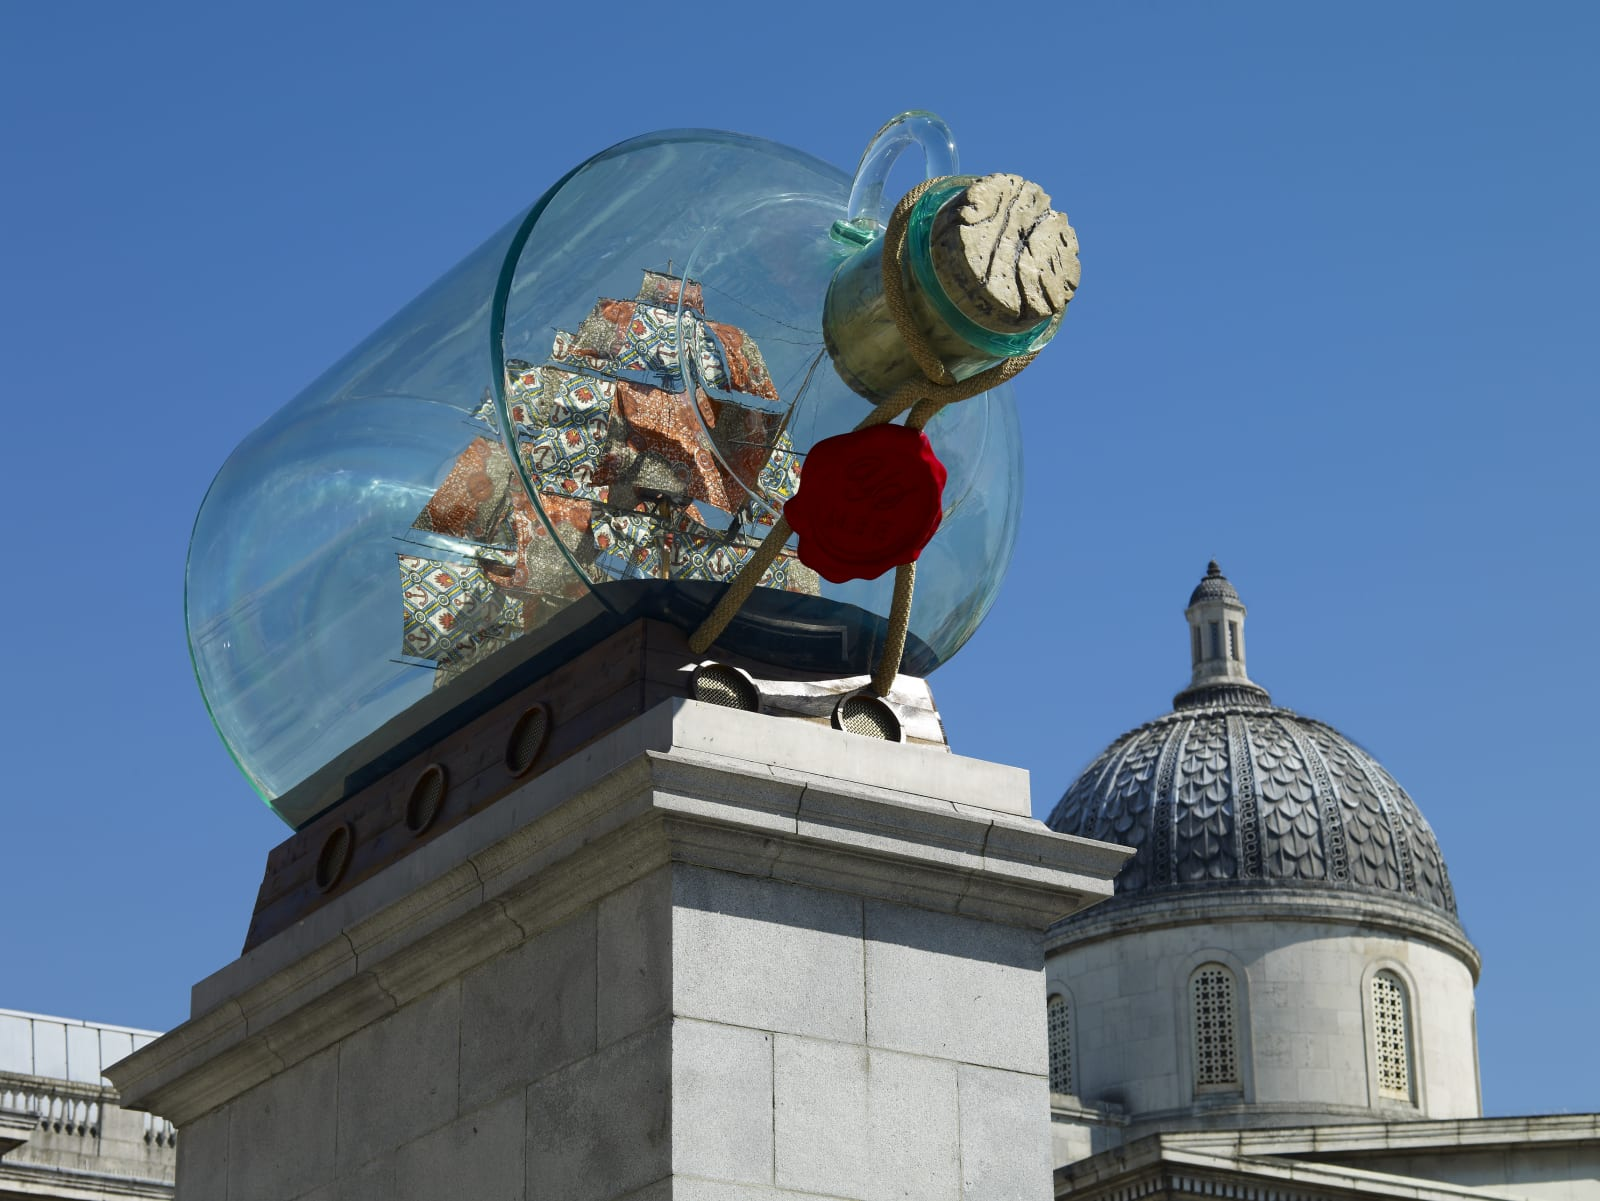 <p>Installation view:<i> </i><i>Nelson's Ship in a Bottle</i>, Fourth Plinth Commission, Trafalgar Square, London (2010-2012)</p>